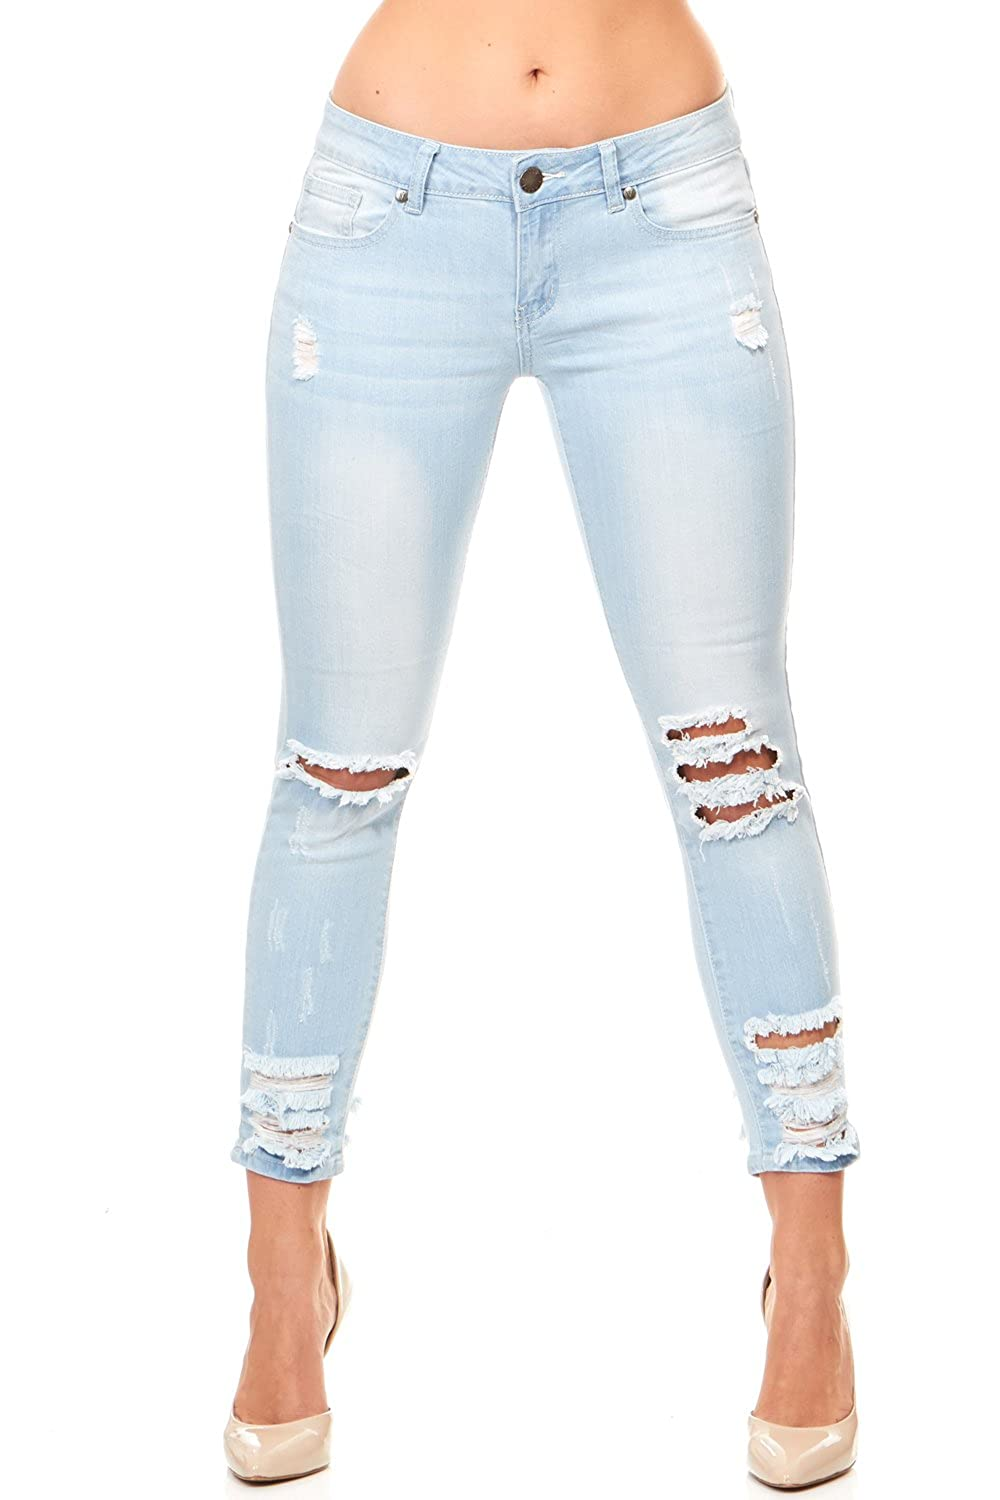 Cover Girl Women's Cropped Ripped Distressed Skinny Jeans Junior Plus YDX Apparel